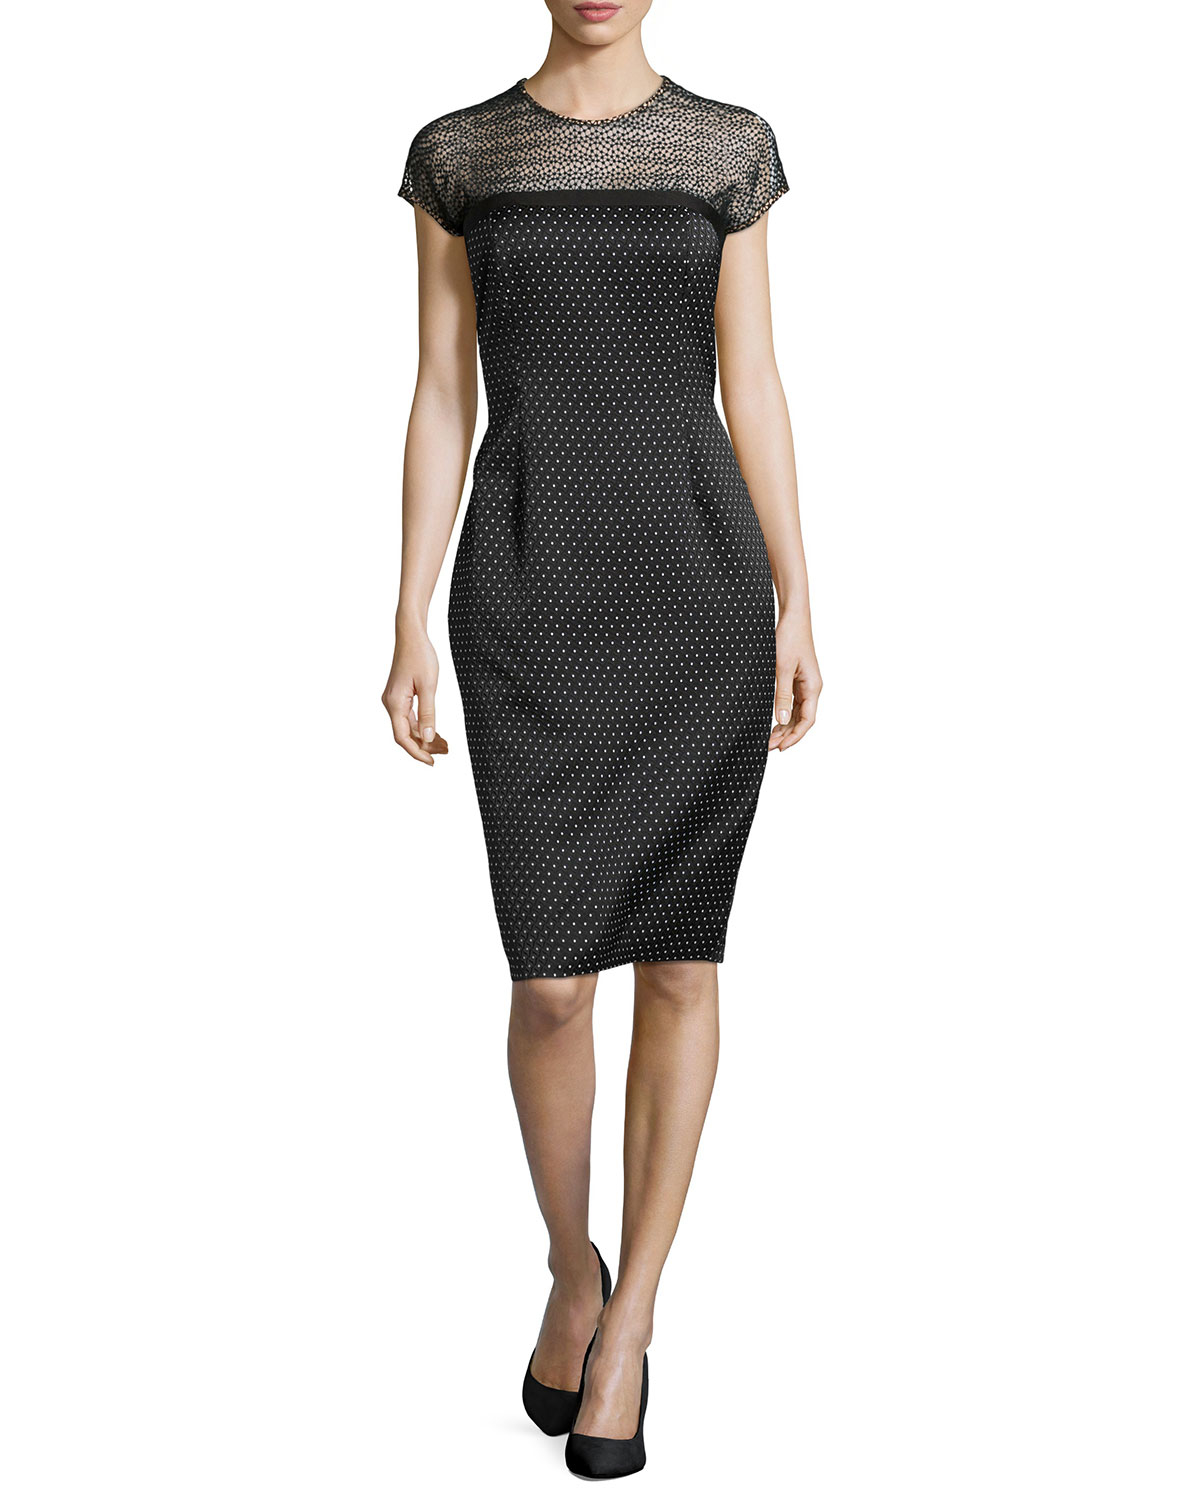 Carmen Marc Valvo Cocktail Dresses 39